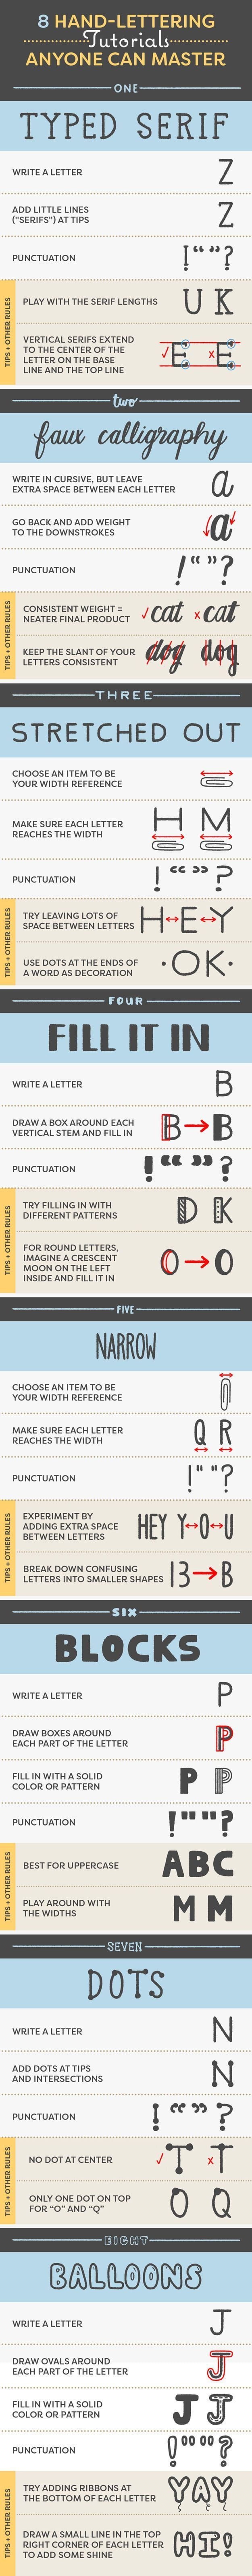 Or, read through these tips for beautiful calligraphy.